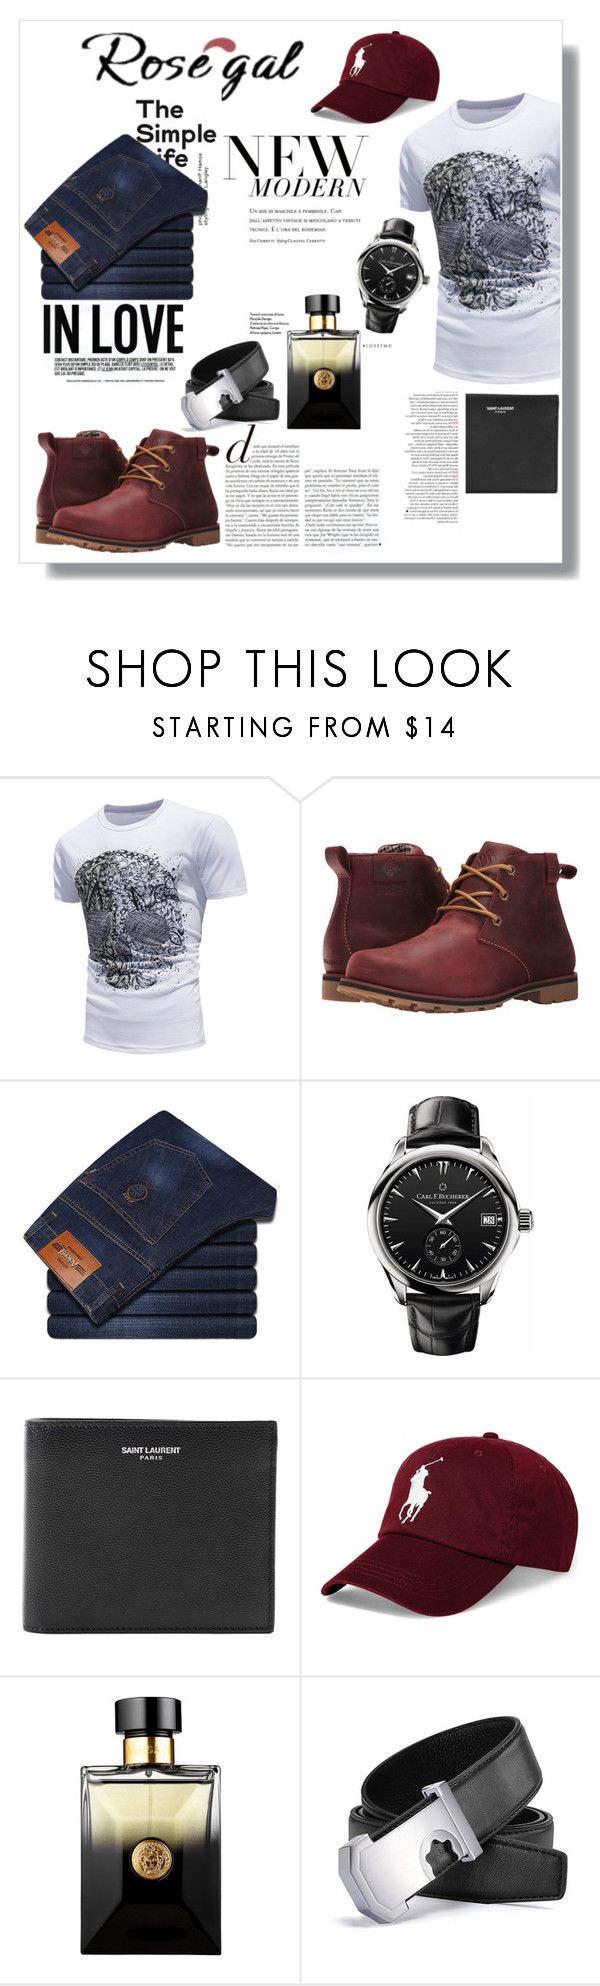 """""""ROSE GAL"""" by novac-georgiana ❤ liked on Polyvore featuring Columbia, Carl F. Bucherer, Yves Saint Laurent, Polo Ralph Lauren, Sephora Collection, modern, men's fashion and menswear"""